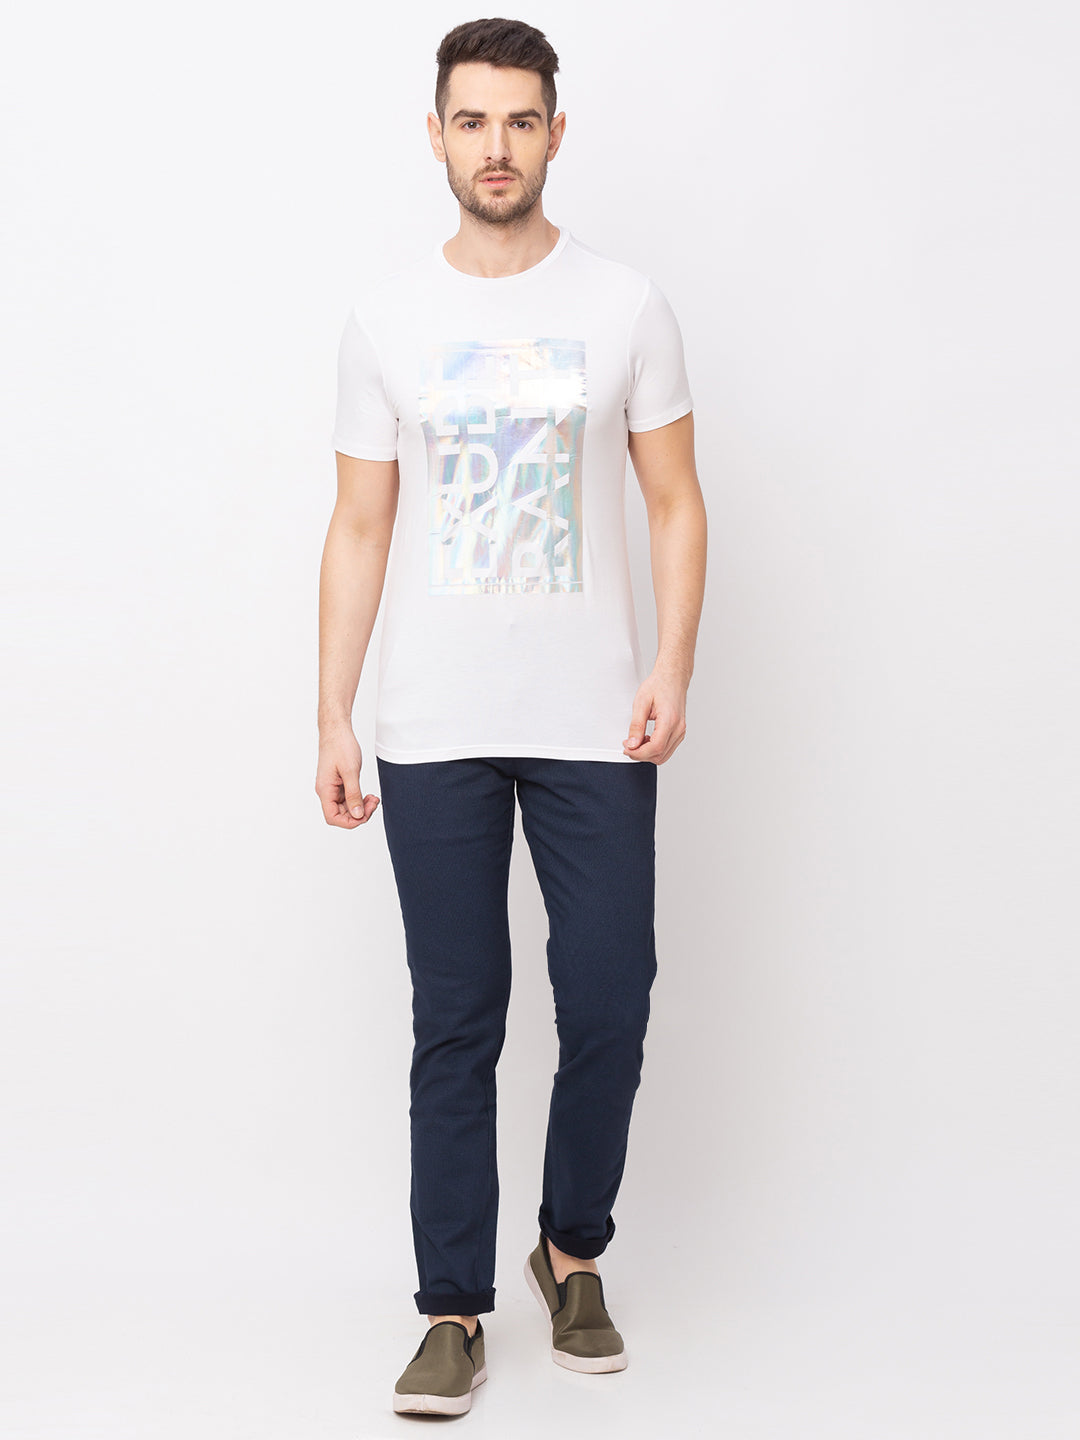 Globus White Printed T-Shirt-5